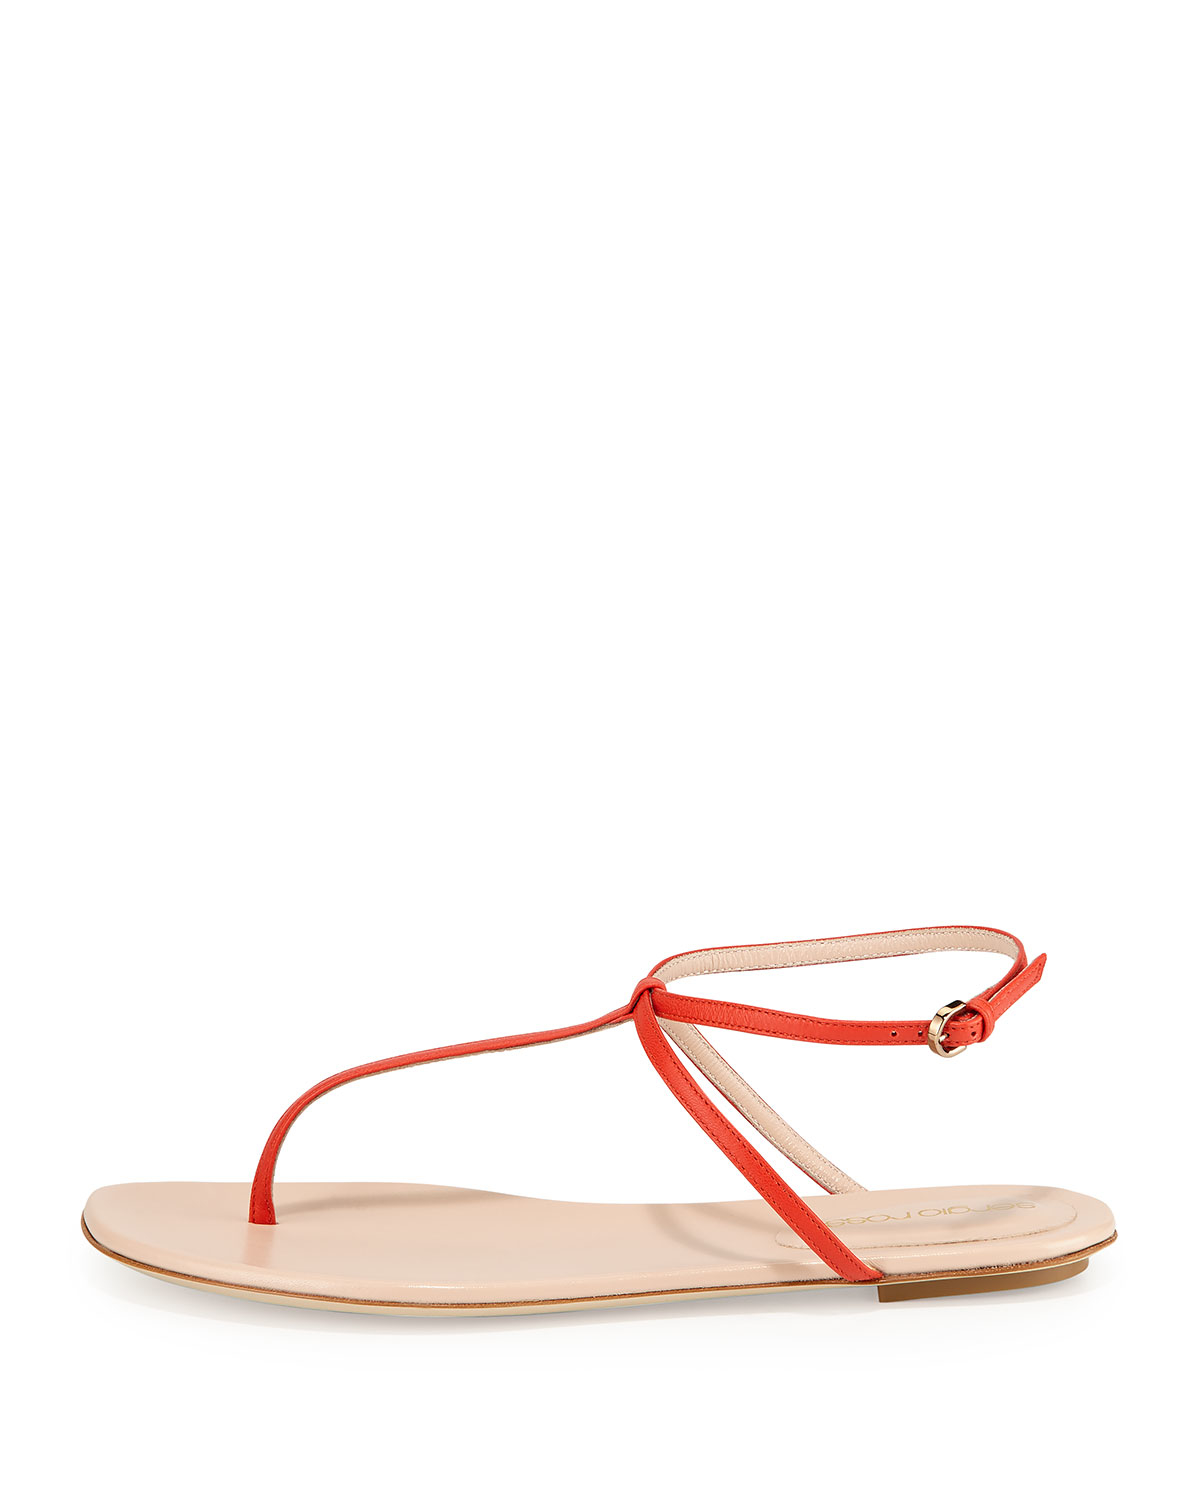 9ed8991711a9 Sergio Rossi Skinny-strap Leather Thong Sandal in Red - Lyst